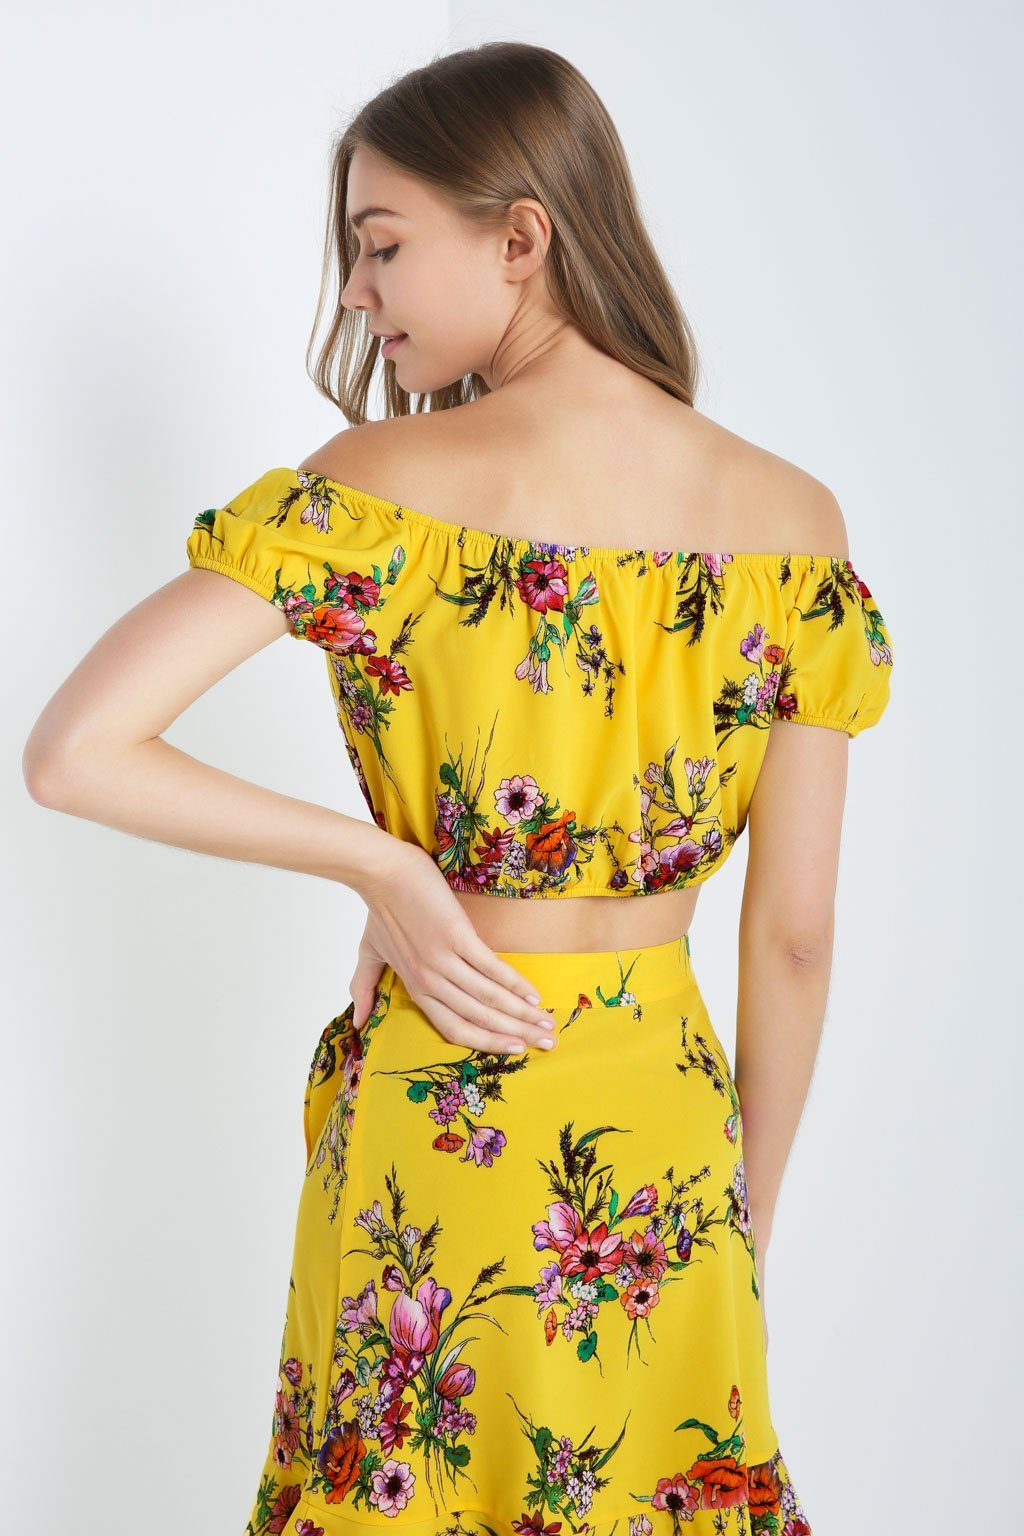 Poshsquare Tops Floral Off The Shoulder Crop Top